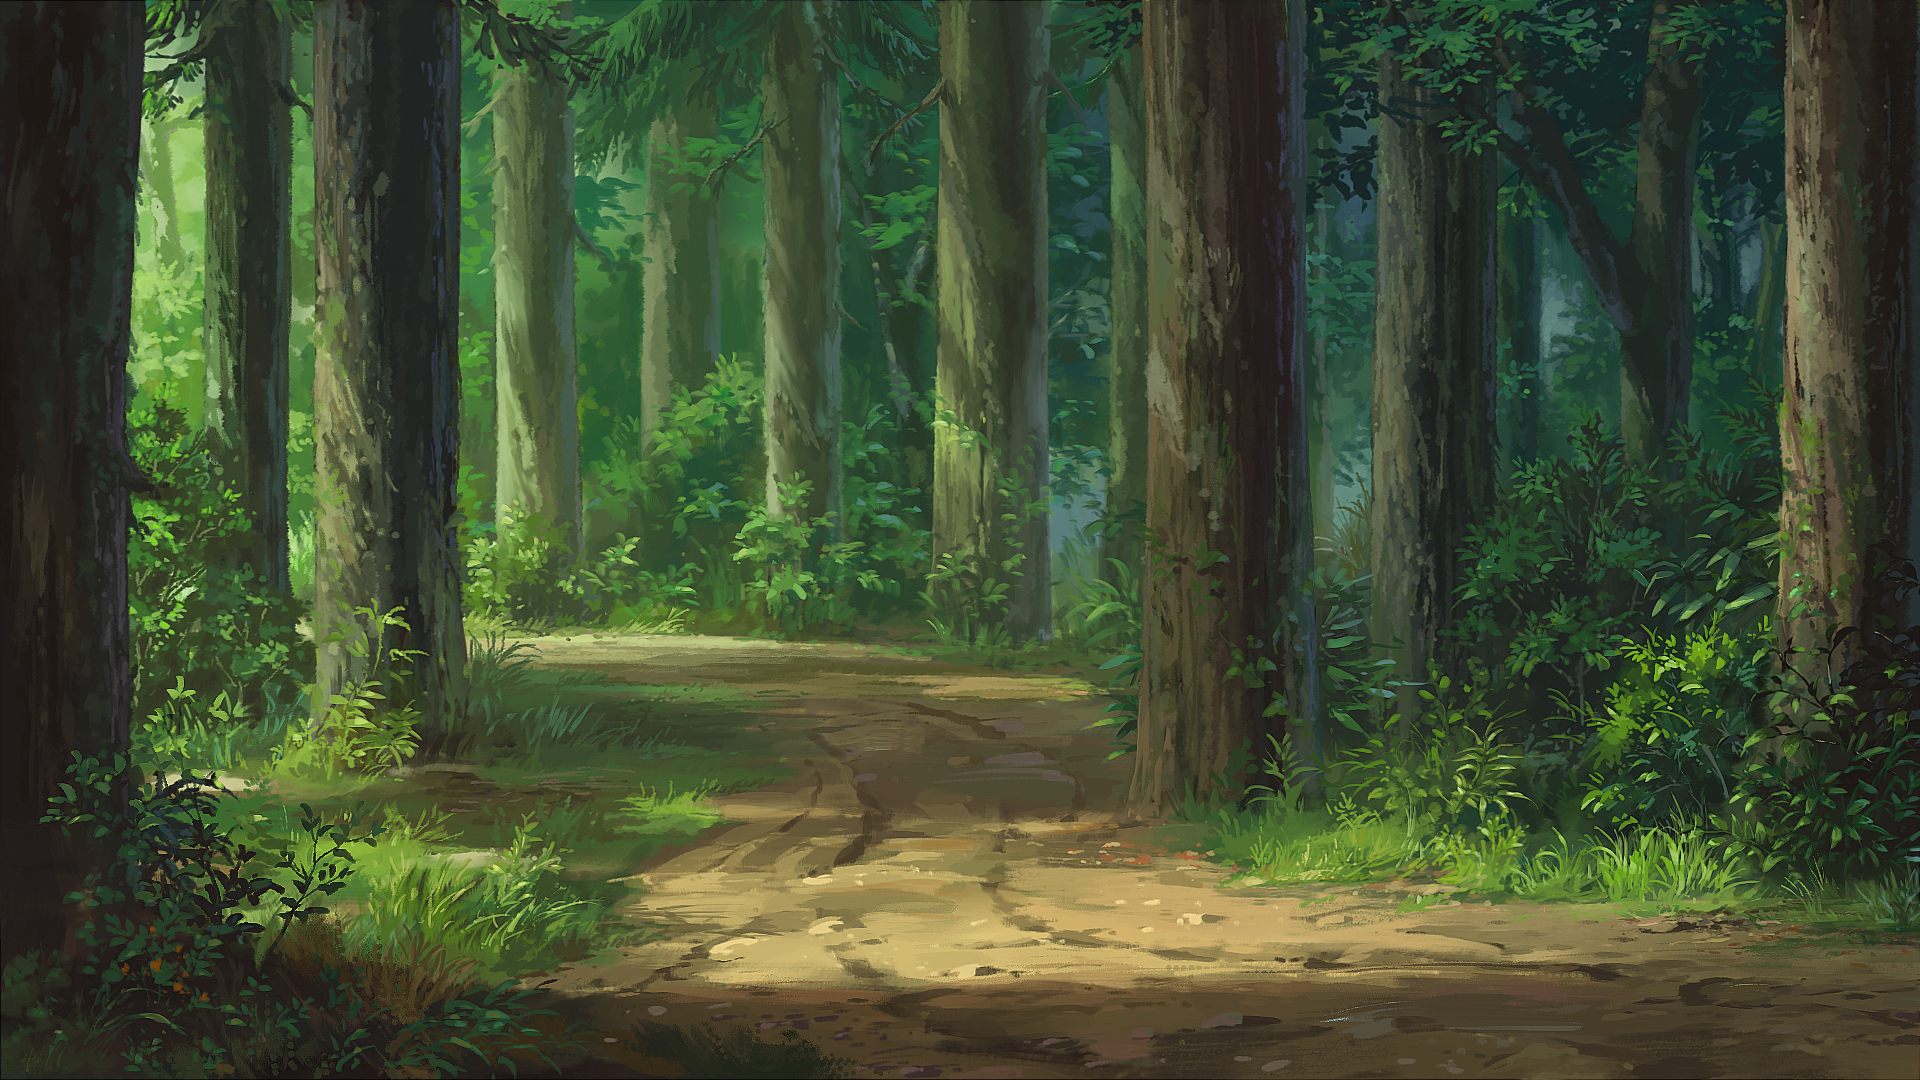 Original hd wallpaper background image 1920x1080 id - Anime forest background ...